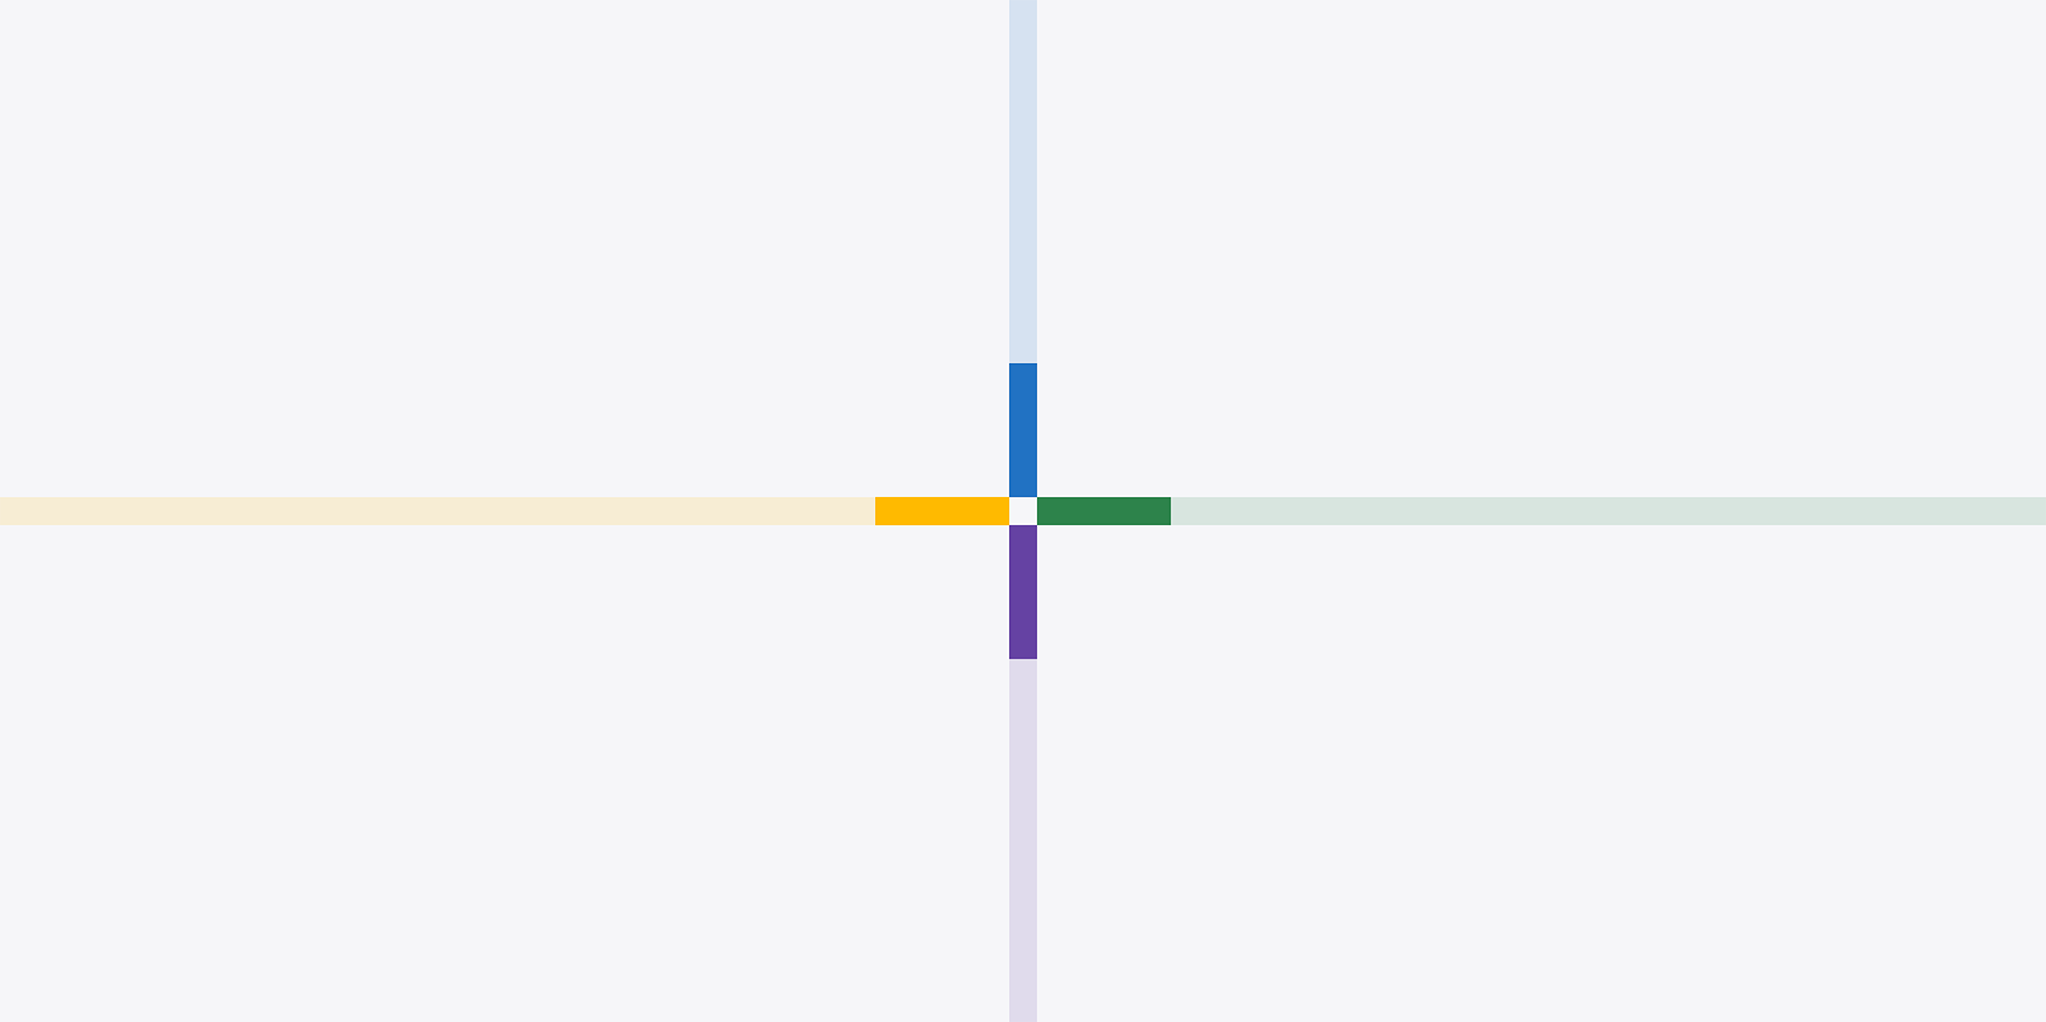 Four colored lines connecting at a point in the middle.